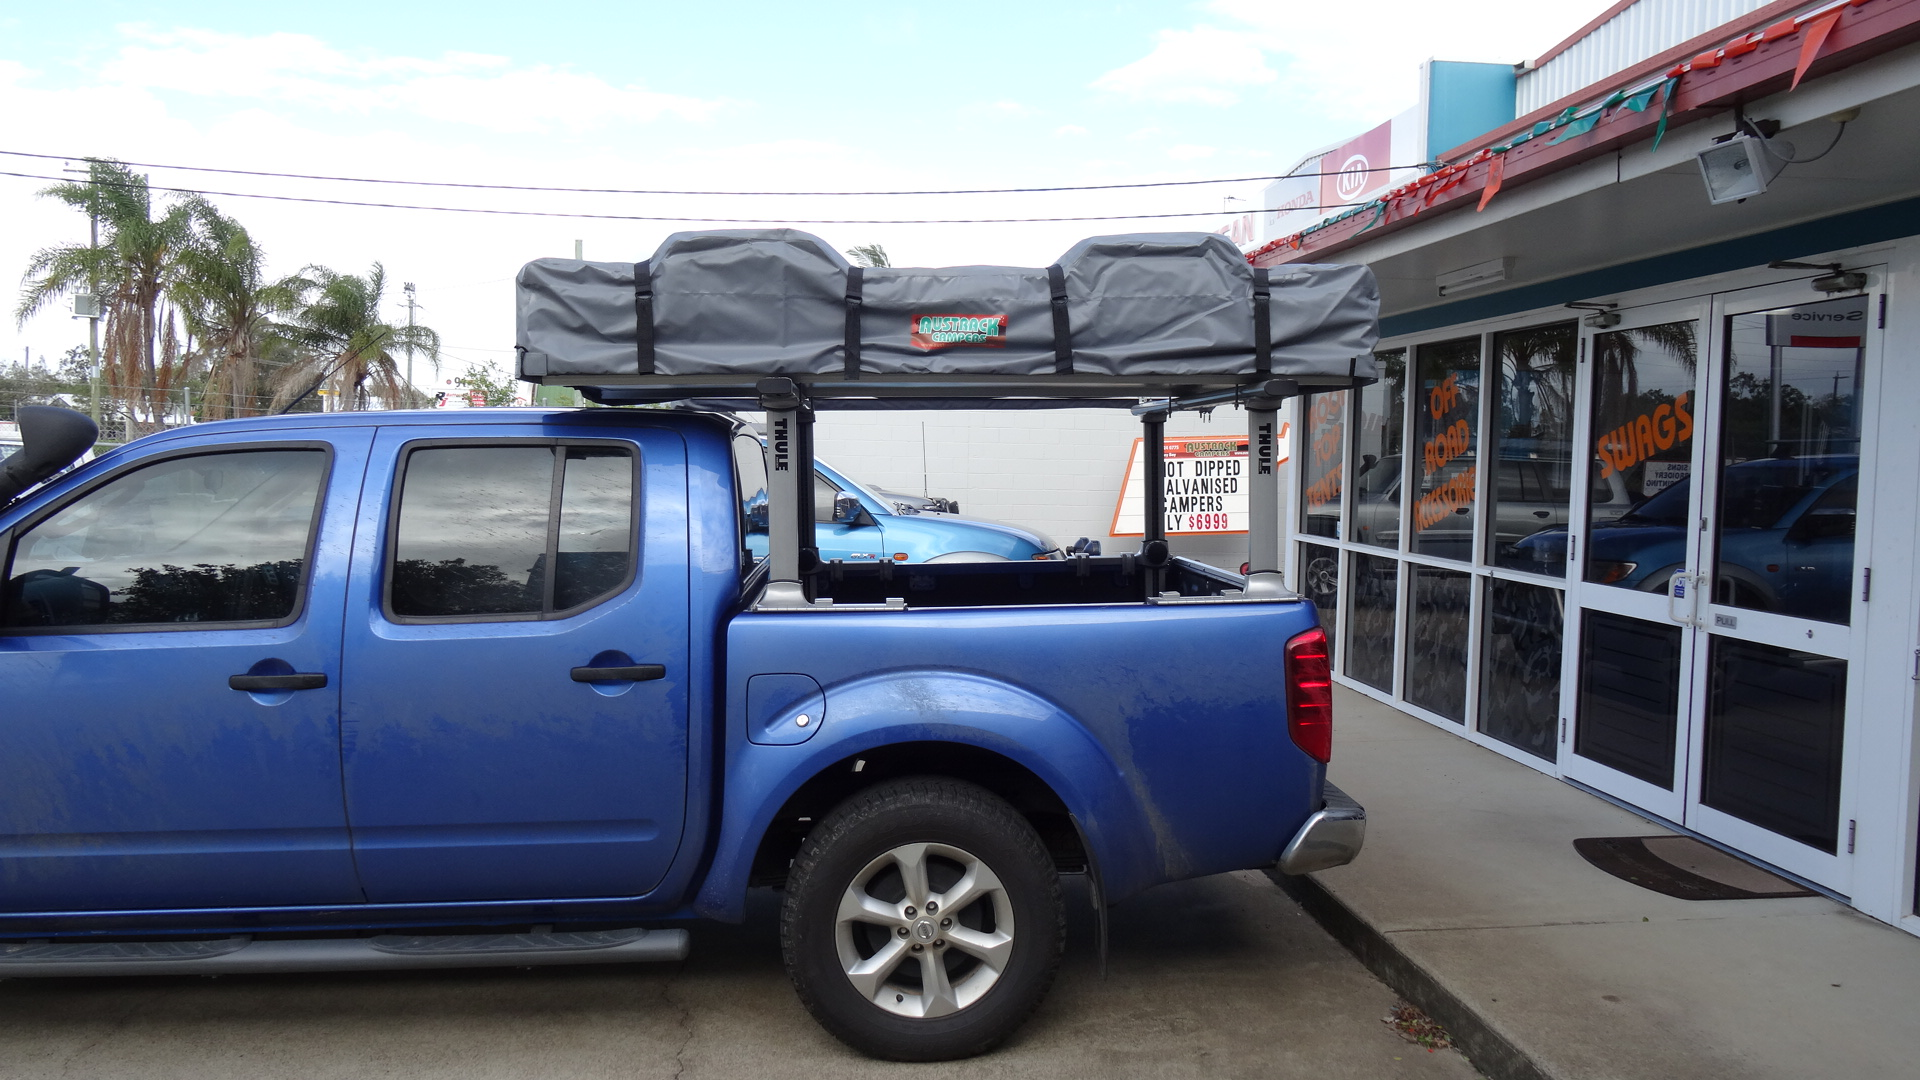 SUPERIOR XL Roof Top Tent 2.2m - Camper Trailers & Rooftop ...